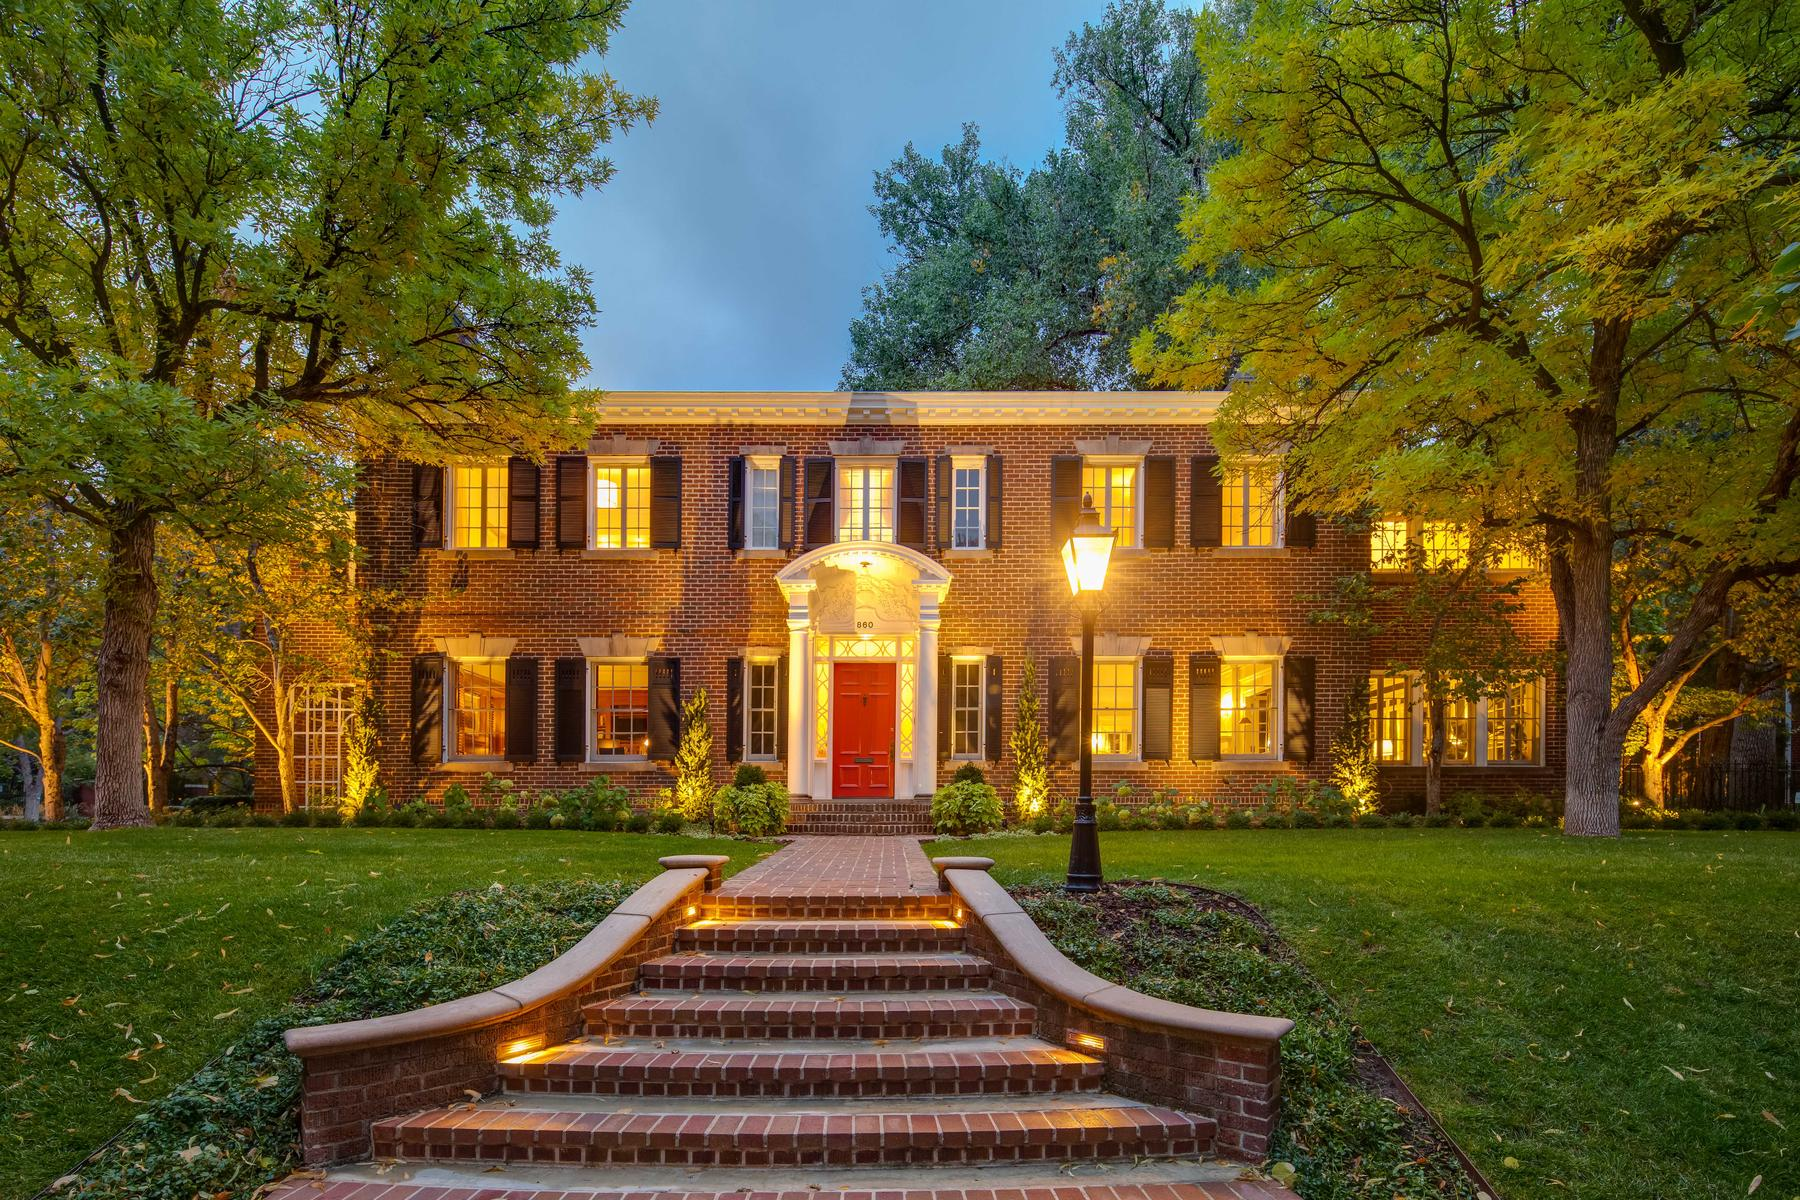 Property for Active at Elegant Georgian Estate 860 Vine St Denver, Colorado 80206 United States